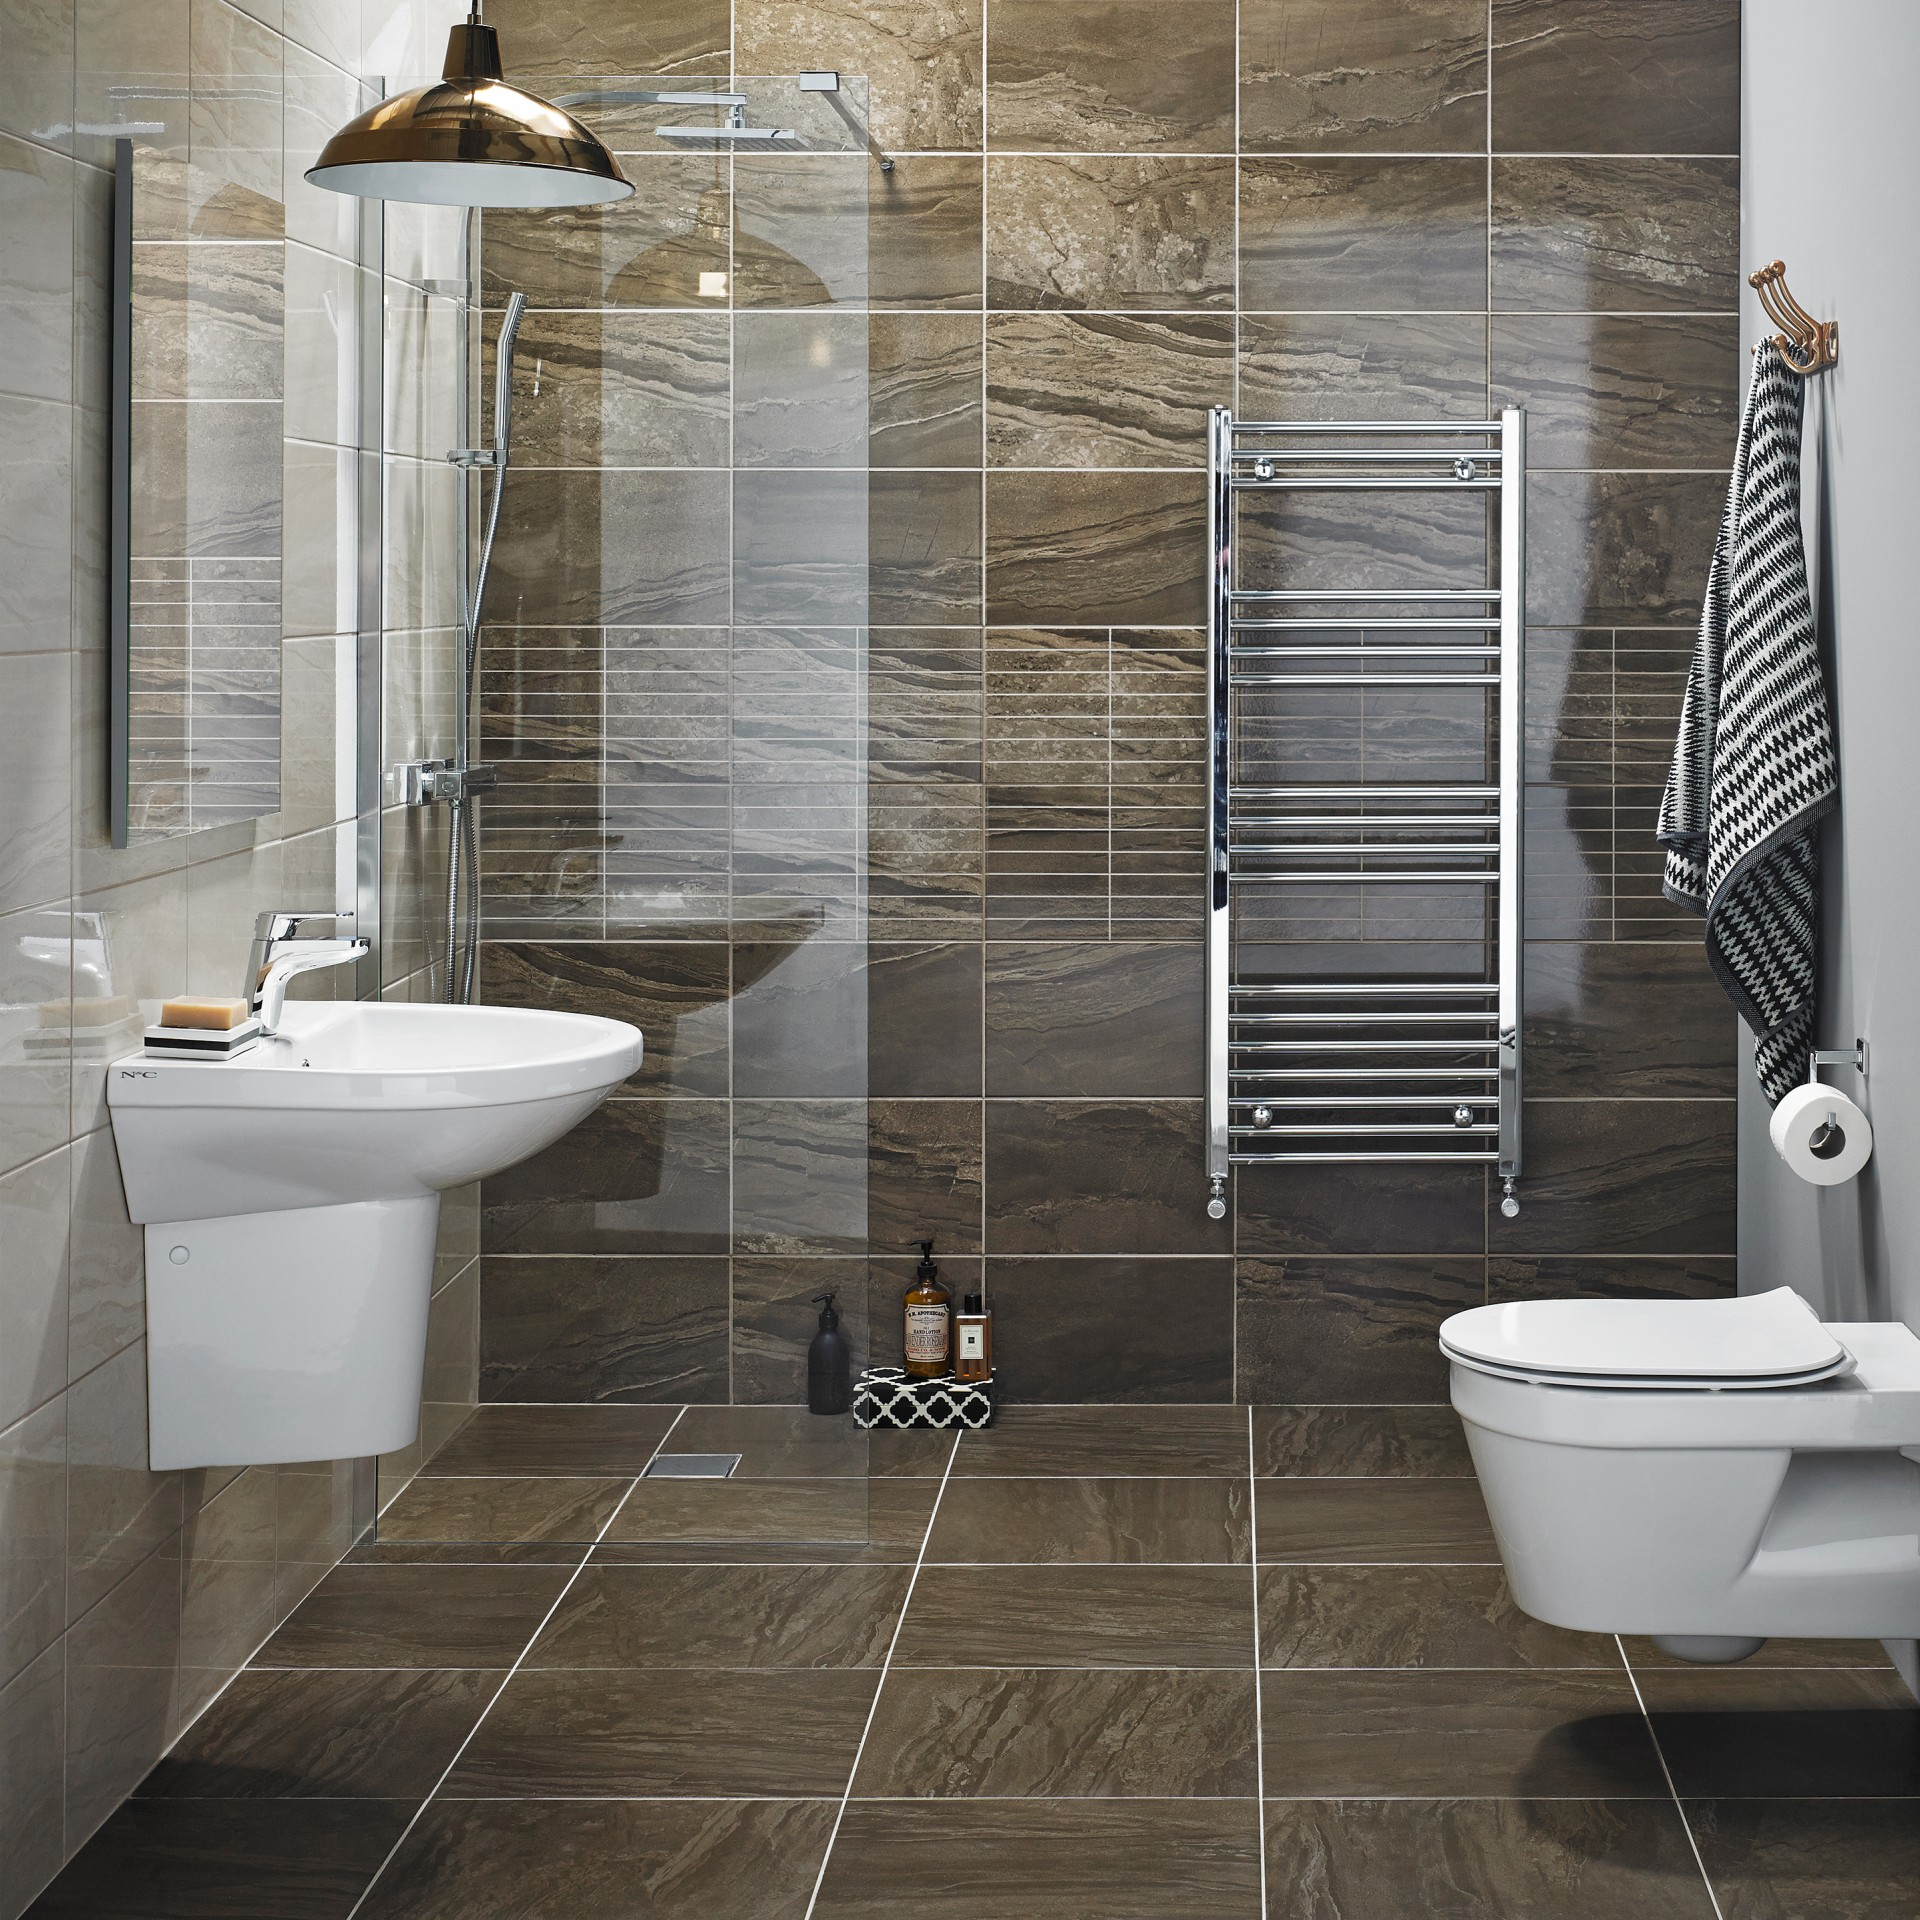 Nc tiles and bathrooms for Bathroom yiles